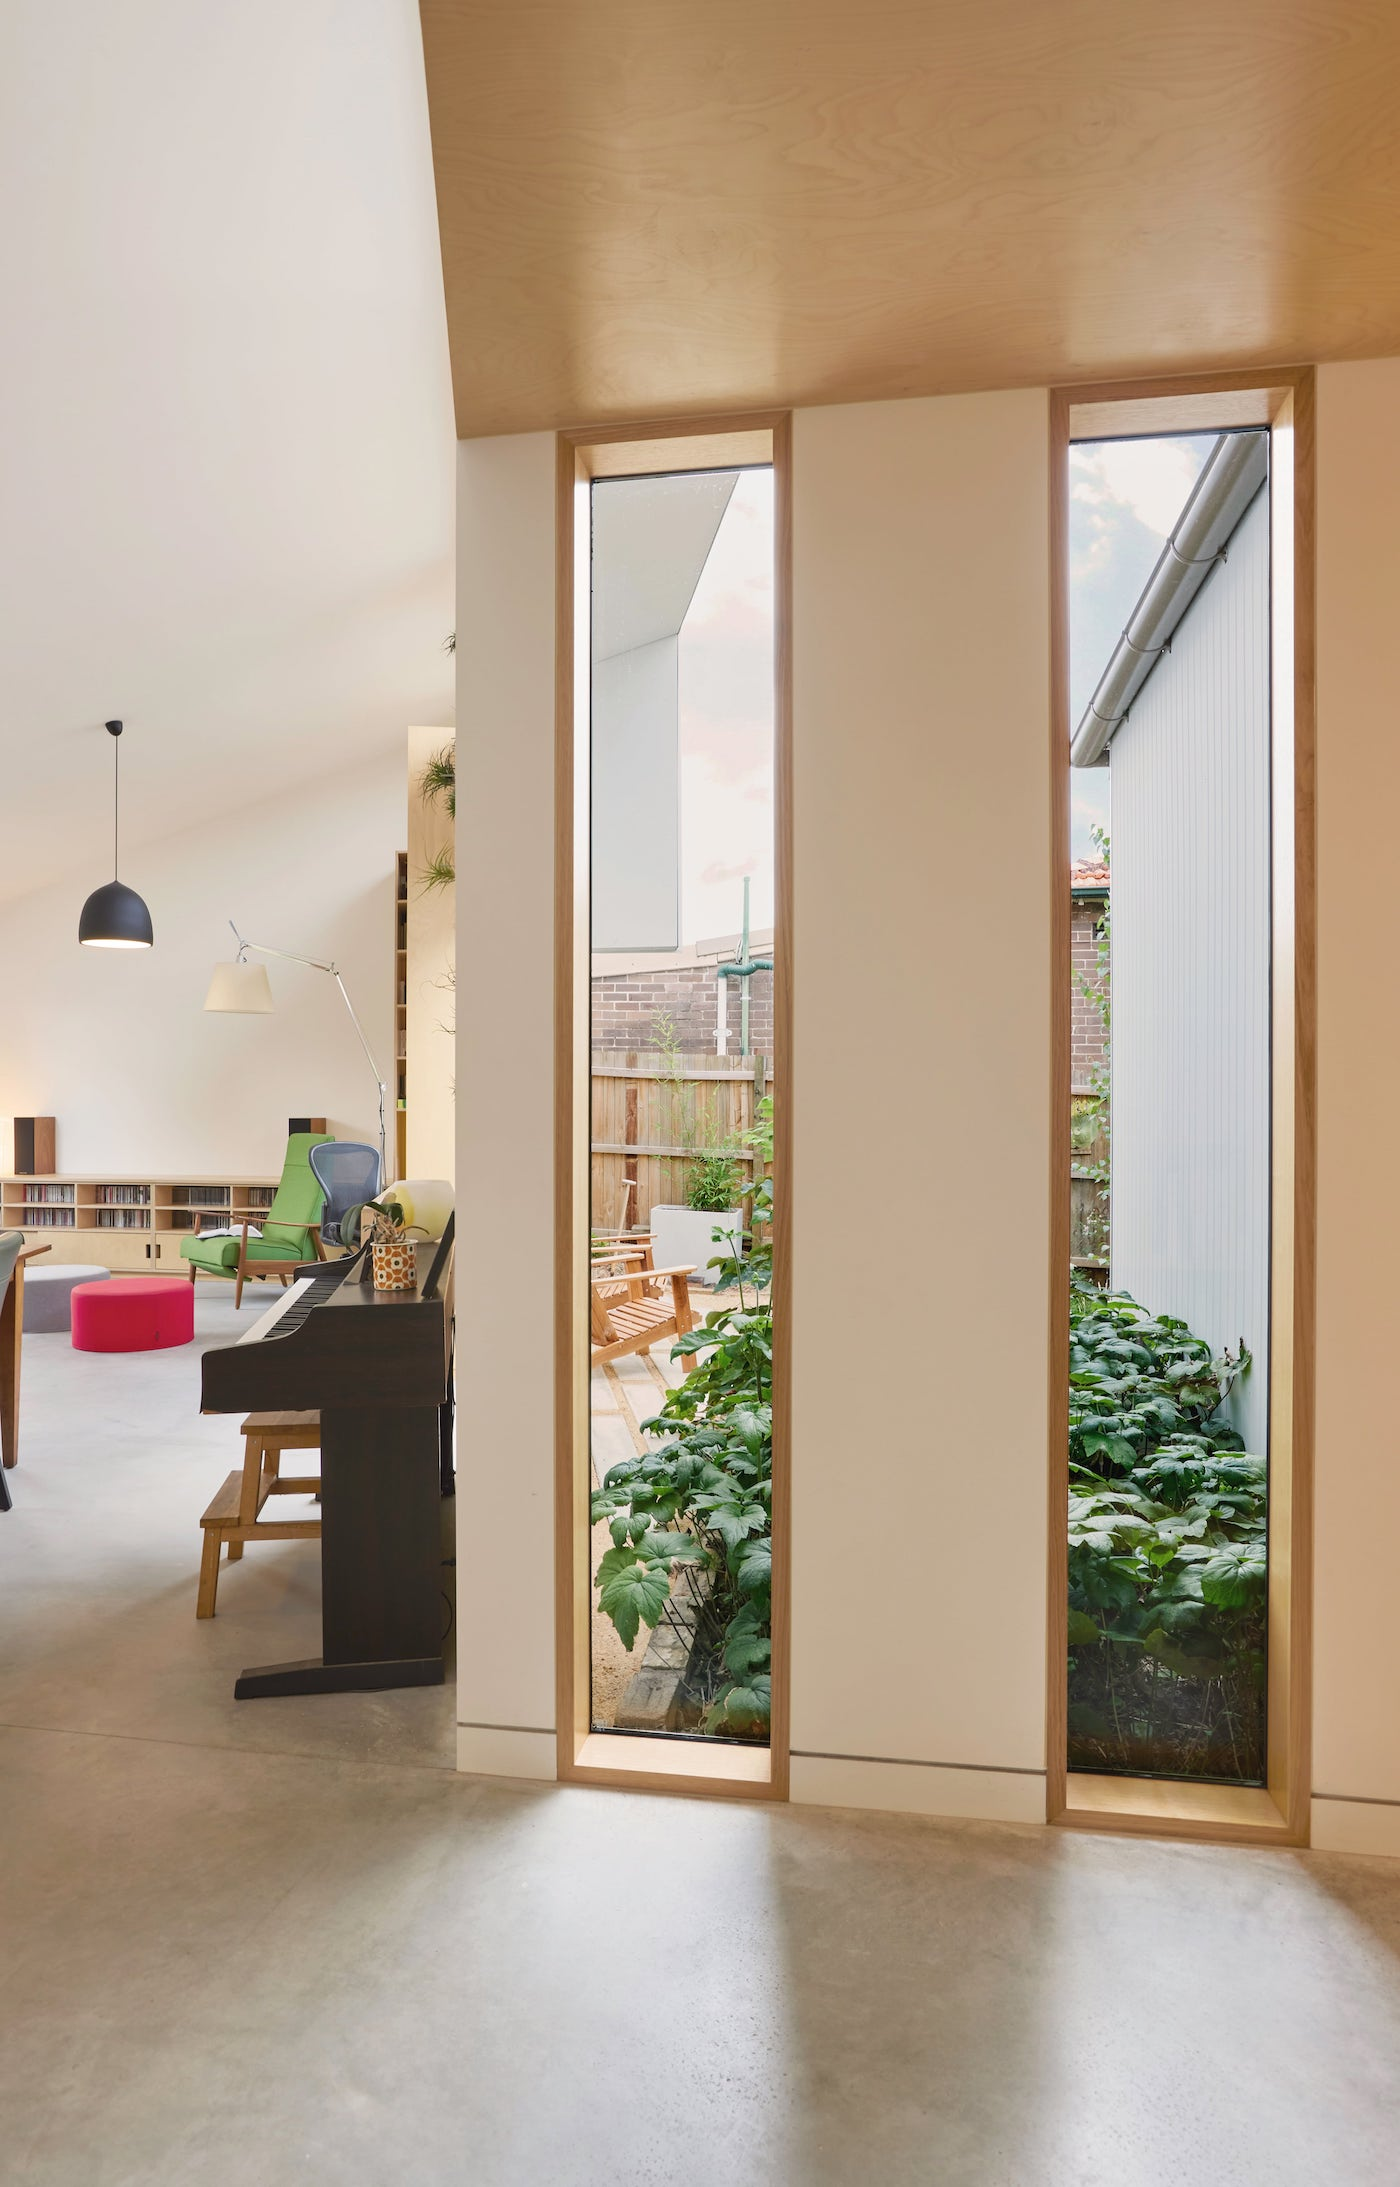 Large windows flood this home with natural light